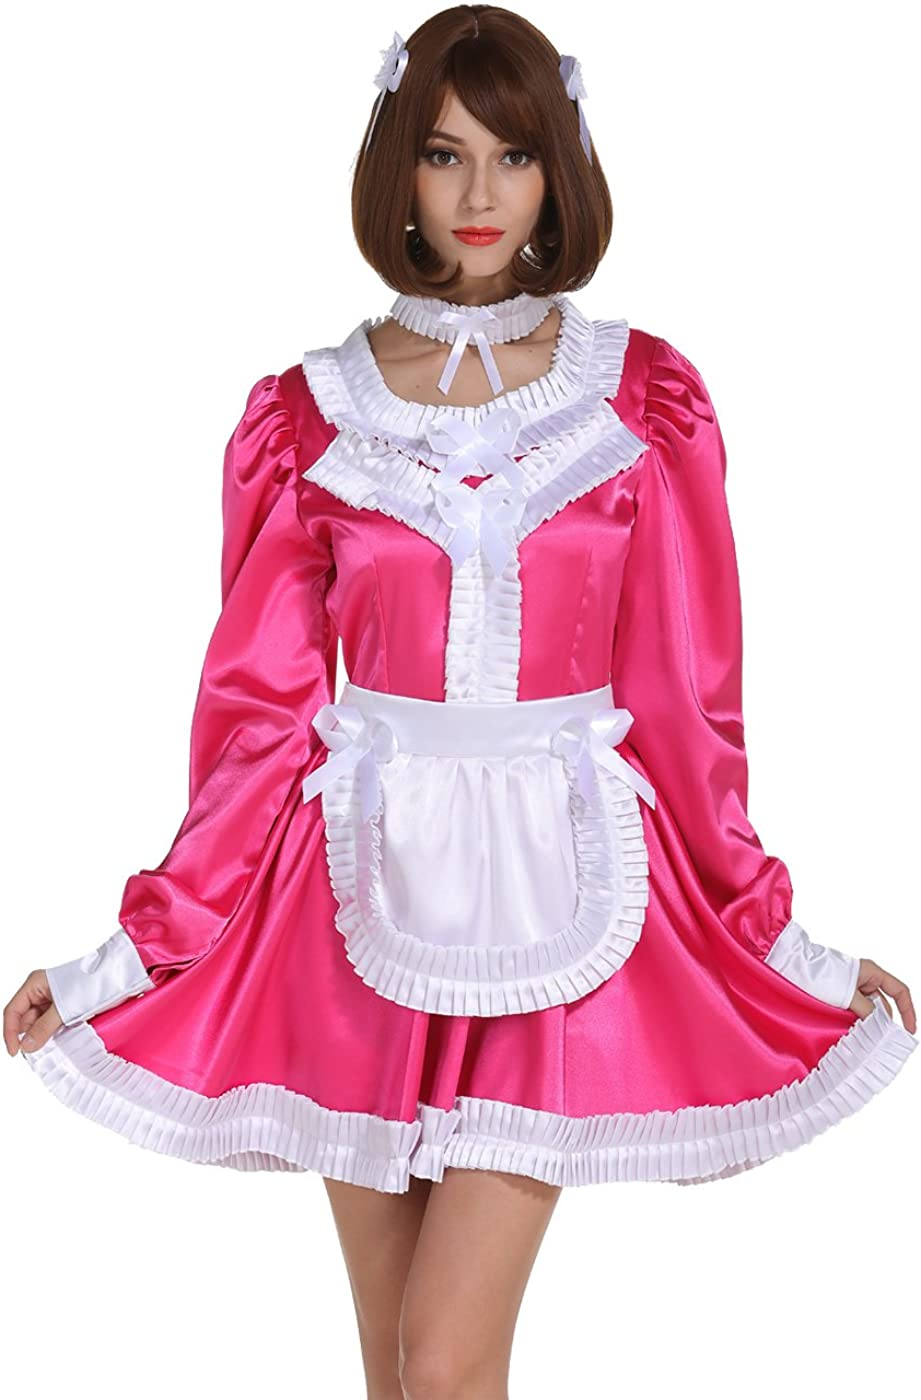 GOceBaby Reservation Sissy Girl Maid Lockable High quality new Frill Rose Dre Carmine Pleated